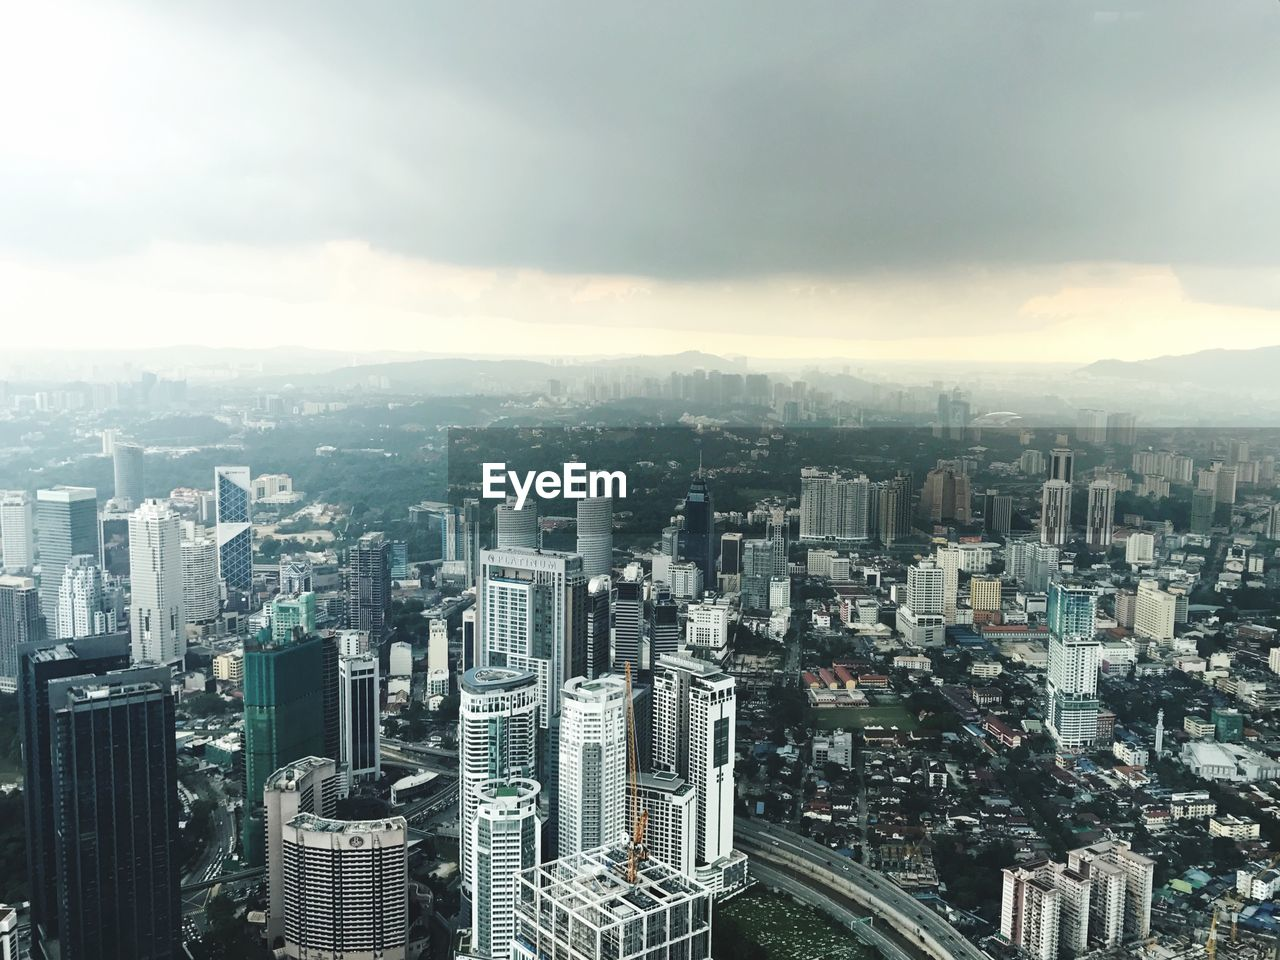 cityscape, building exterior, built structure, city, architecture, building, sky, crowd, tall - high, skyscraper, office building exterior, cloud - sky, nature, residential district, crowded, day, modern, high angle view, city life, outdoors, financial district